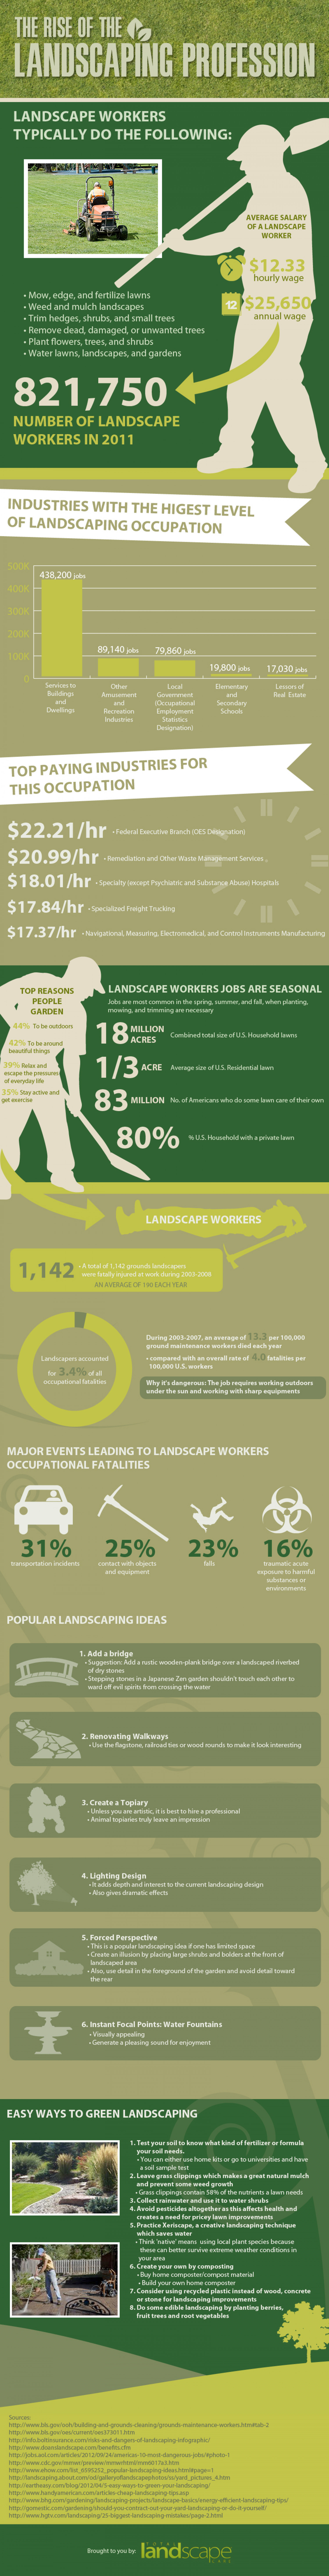 The Rise of the Landscaping Profession Infographic